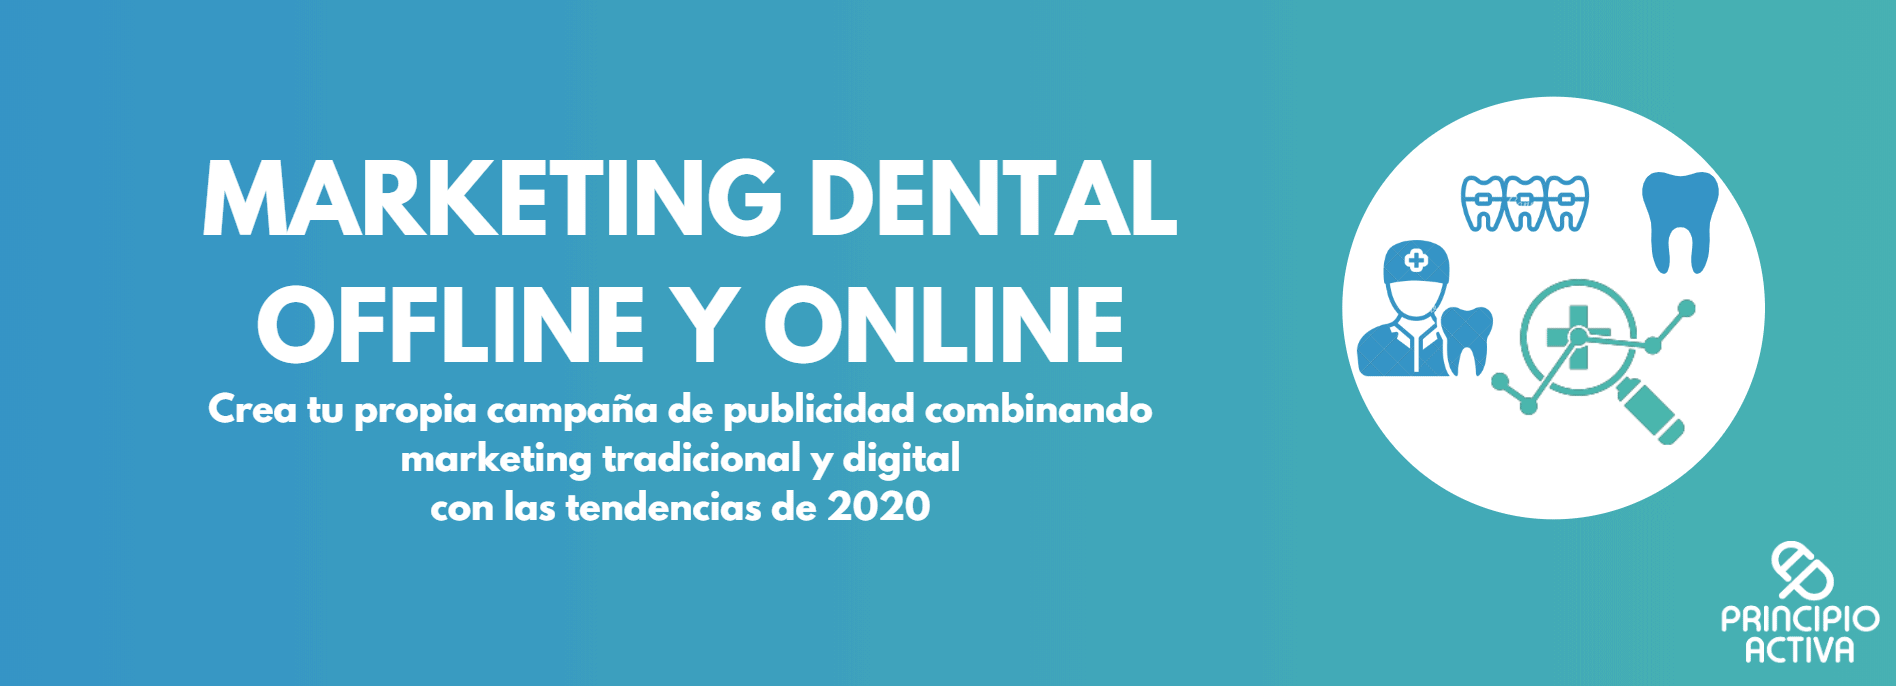 marketing dental offline y digital imagen cabecera principio activa